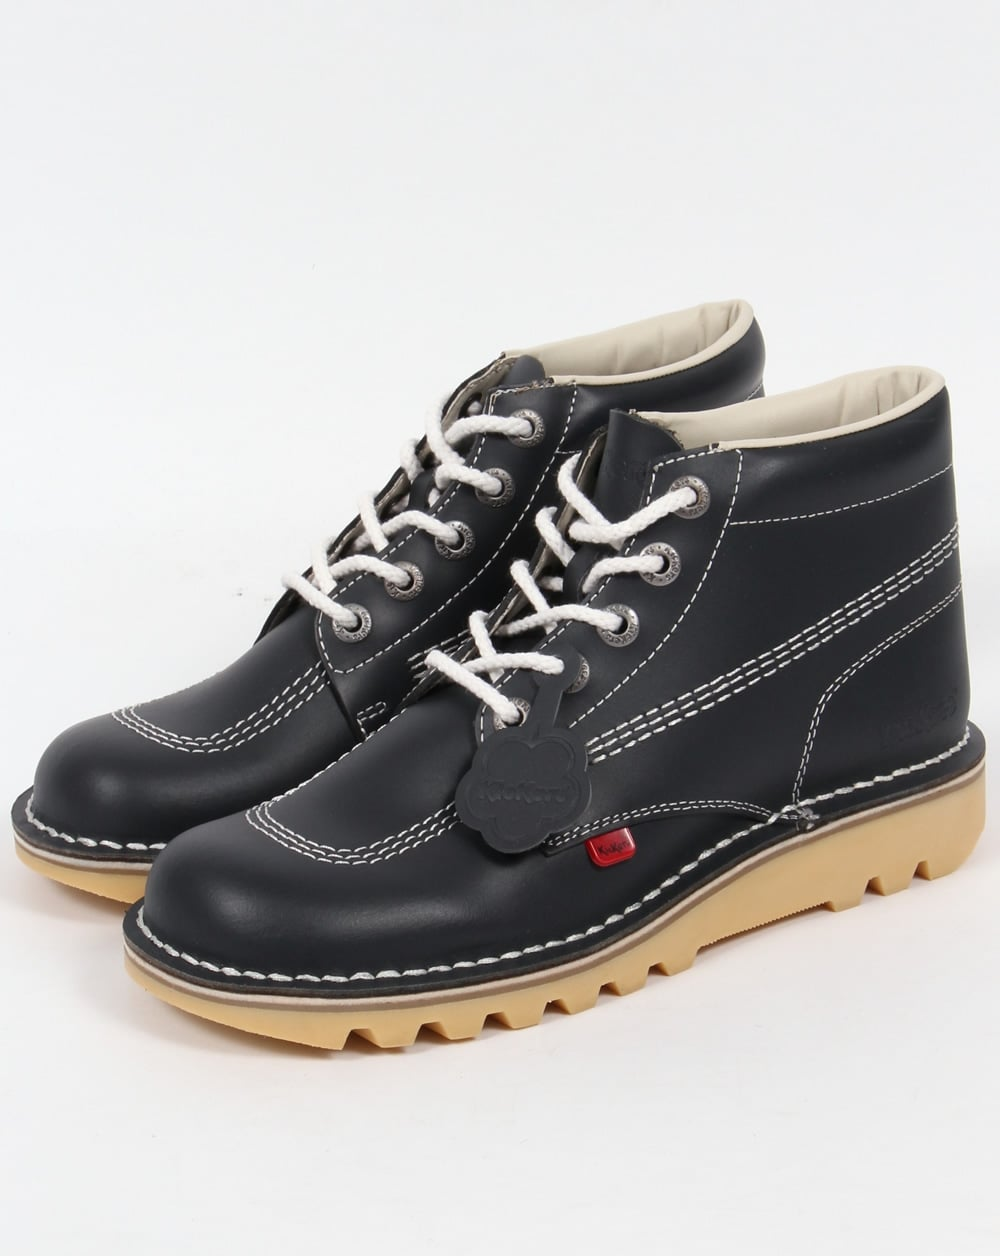 Kickers Leather Hi Boots in Navy | 80s